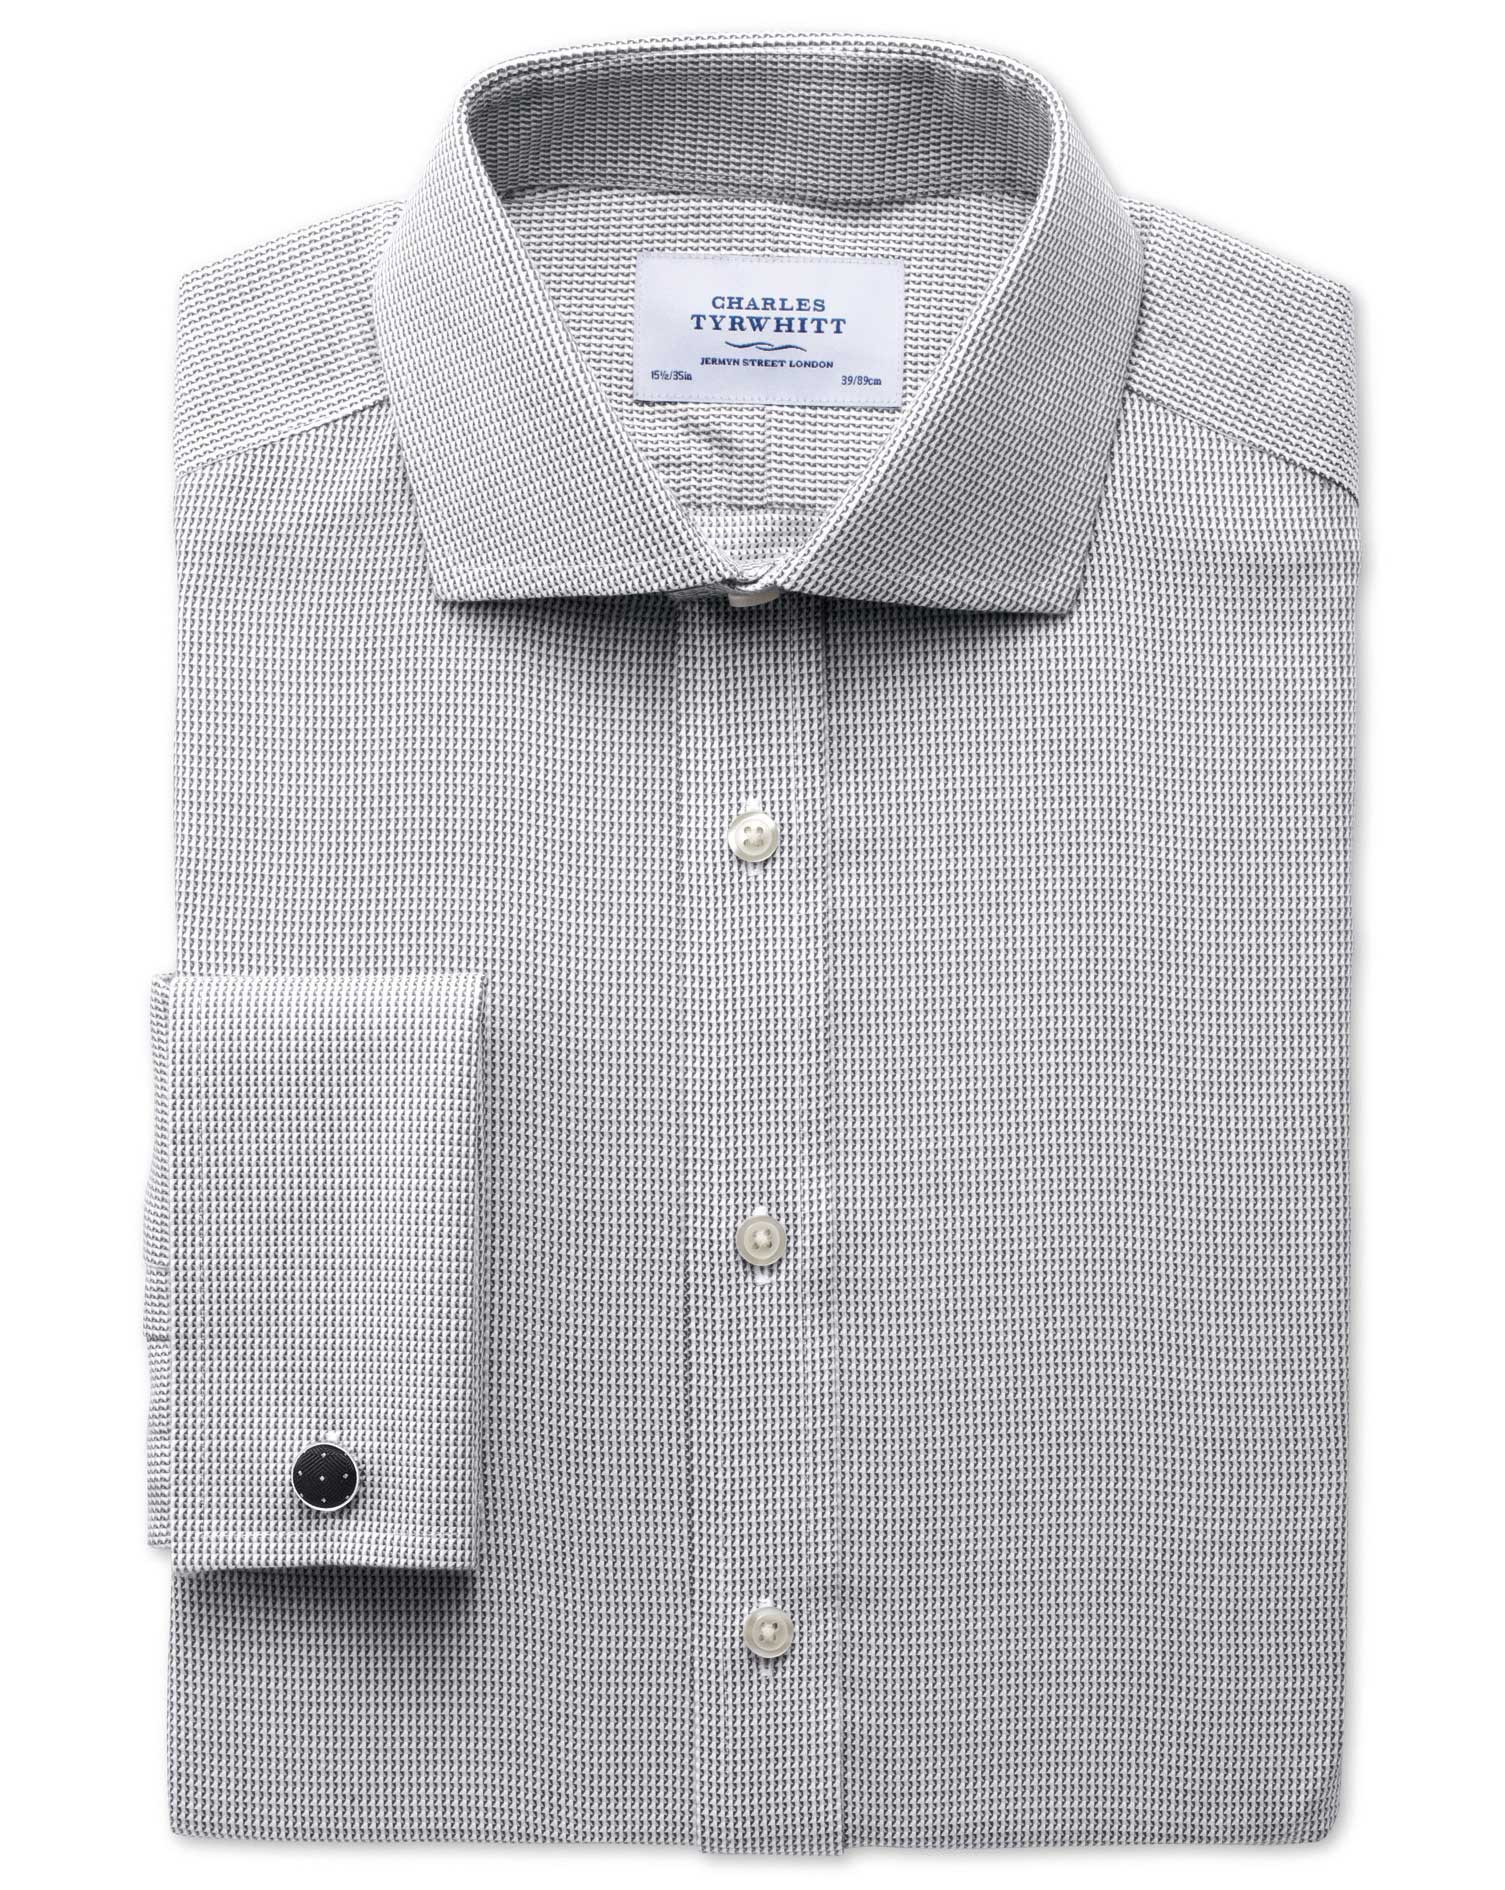 Slim Fit Cutaway Collar Non-Iron Grey Cotton Formal Shirt Double Cuff Size 16/34 by Charles Tyrwhitt